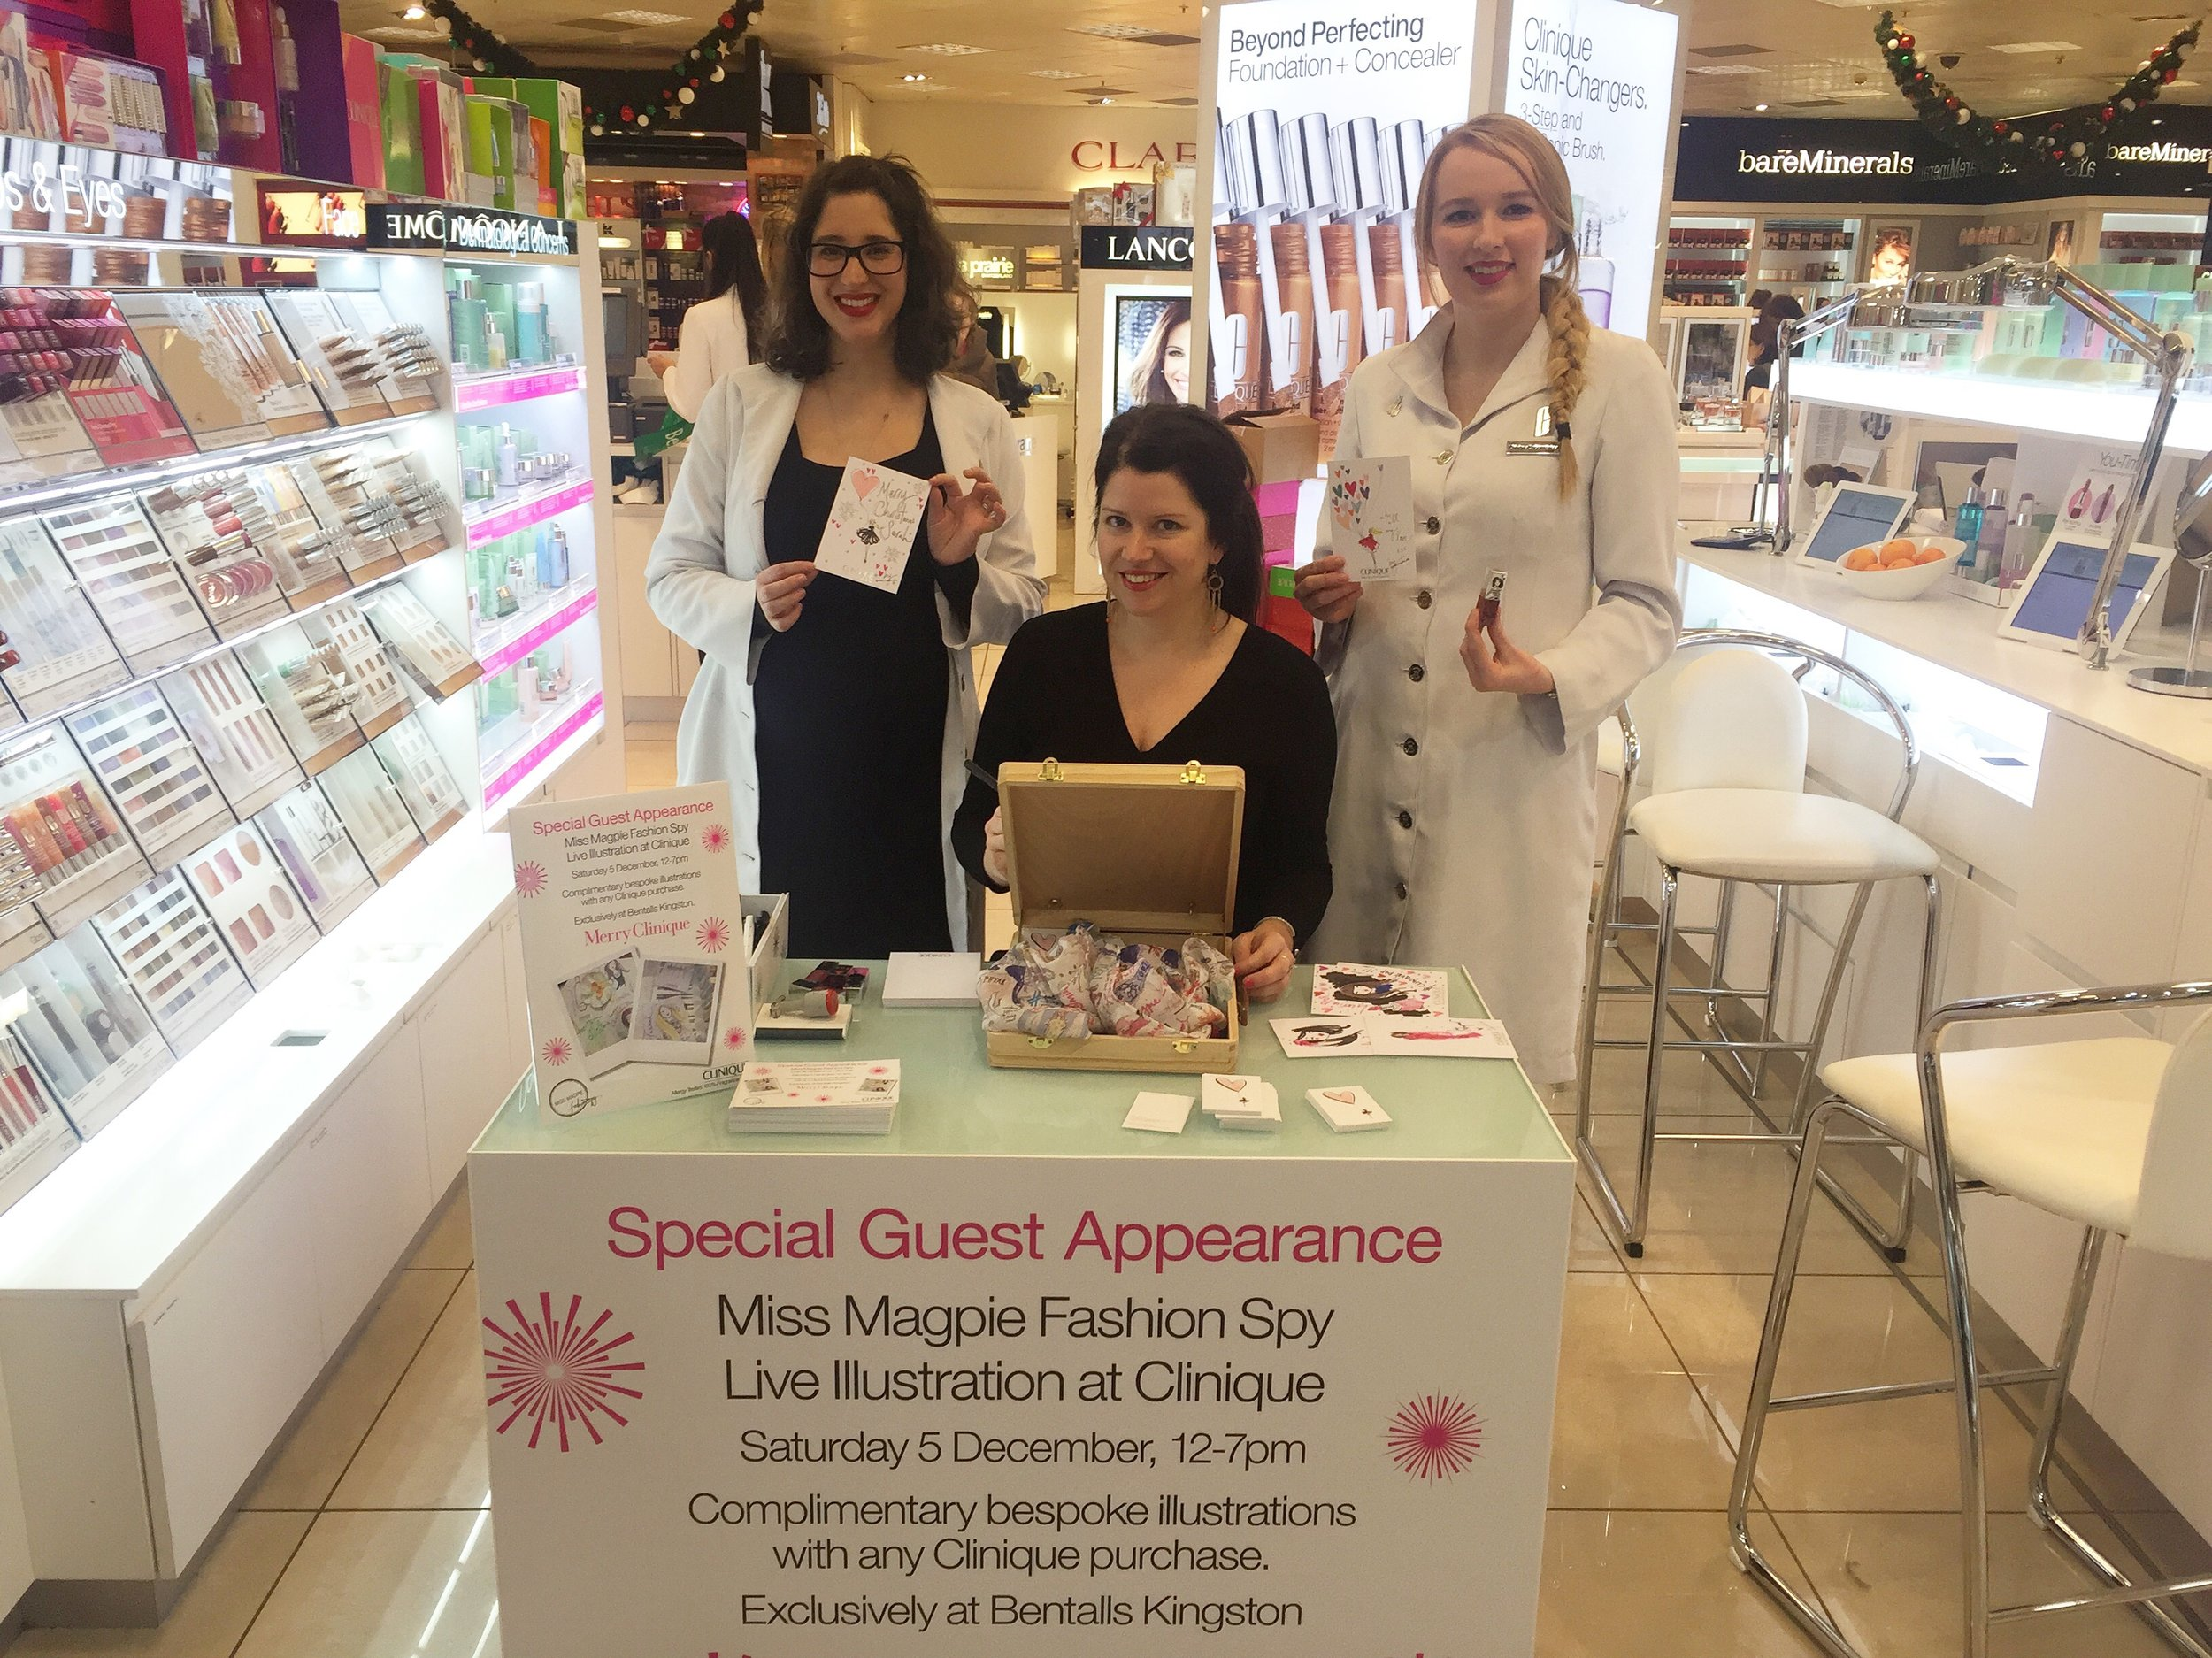 The best desk ever! Me illustrating for customers in Bentalls Kingston, for Clinique.